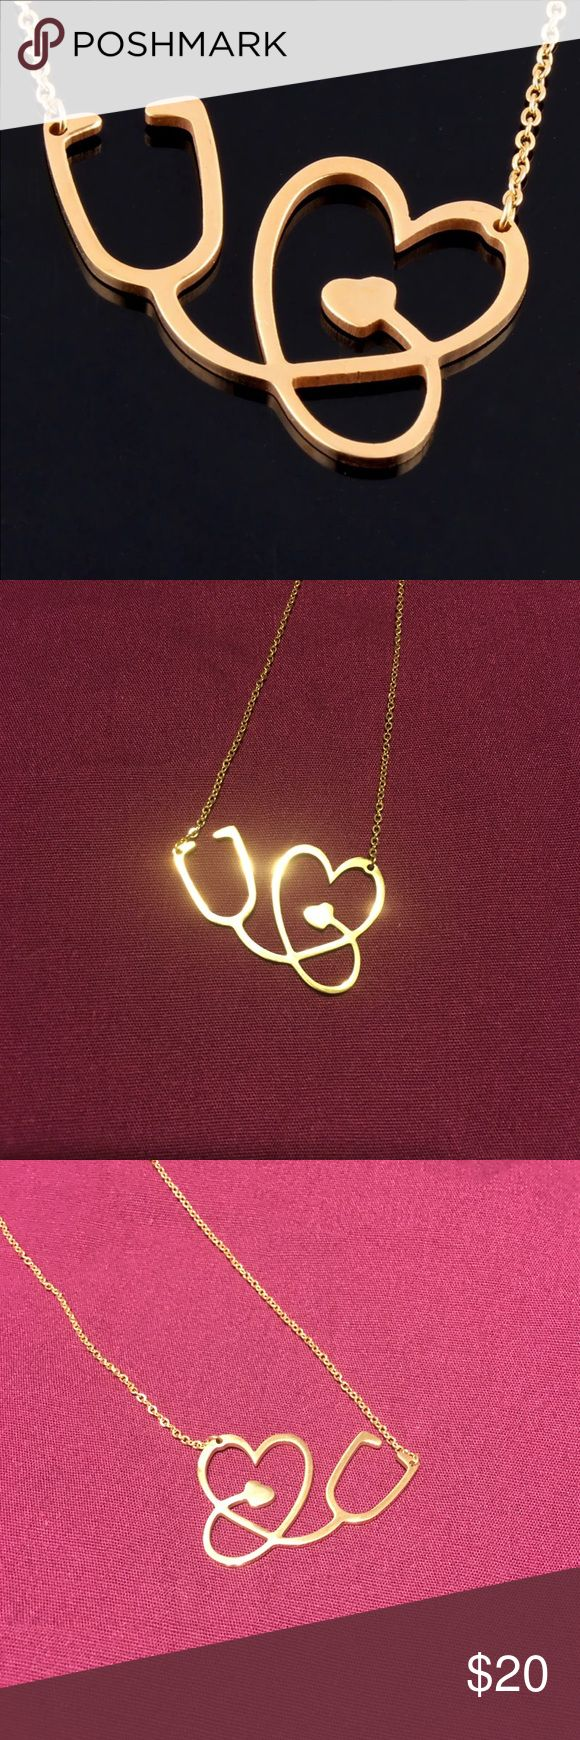 18k Gold Plated Heart Stethoscope Necklace 18k Gold Plated Heart Stethoscope Necklace. Perfect to give as a gift to a nurse, medical assistant, Doctor, or anyone else in a medical profession! They are brand new and come in rose gold, regular gold, and silver. Multiple are available. No trades. Jewelry Necklaces                                                                                                                                                                                 More